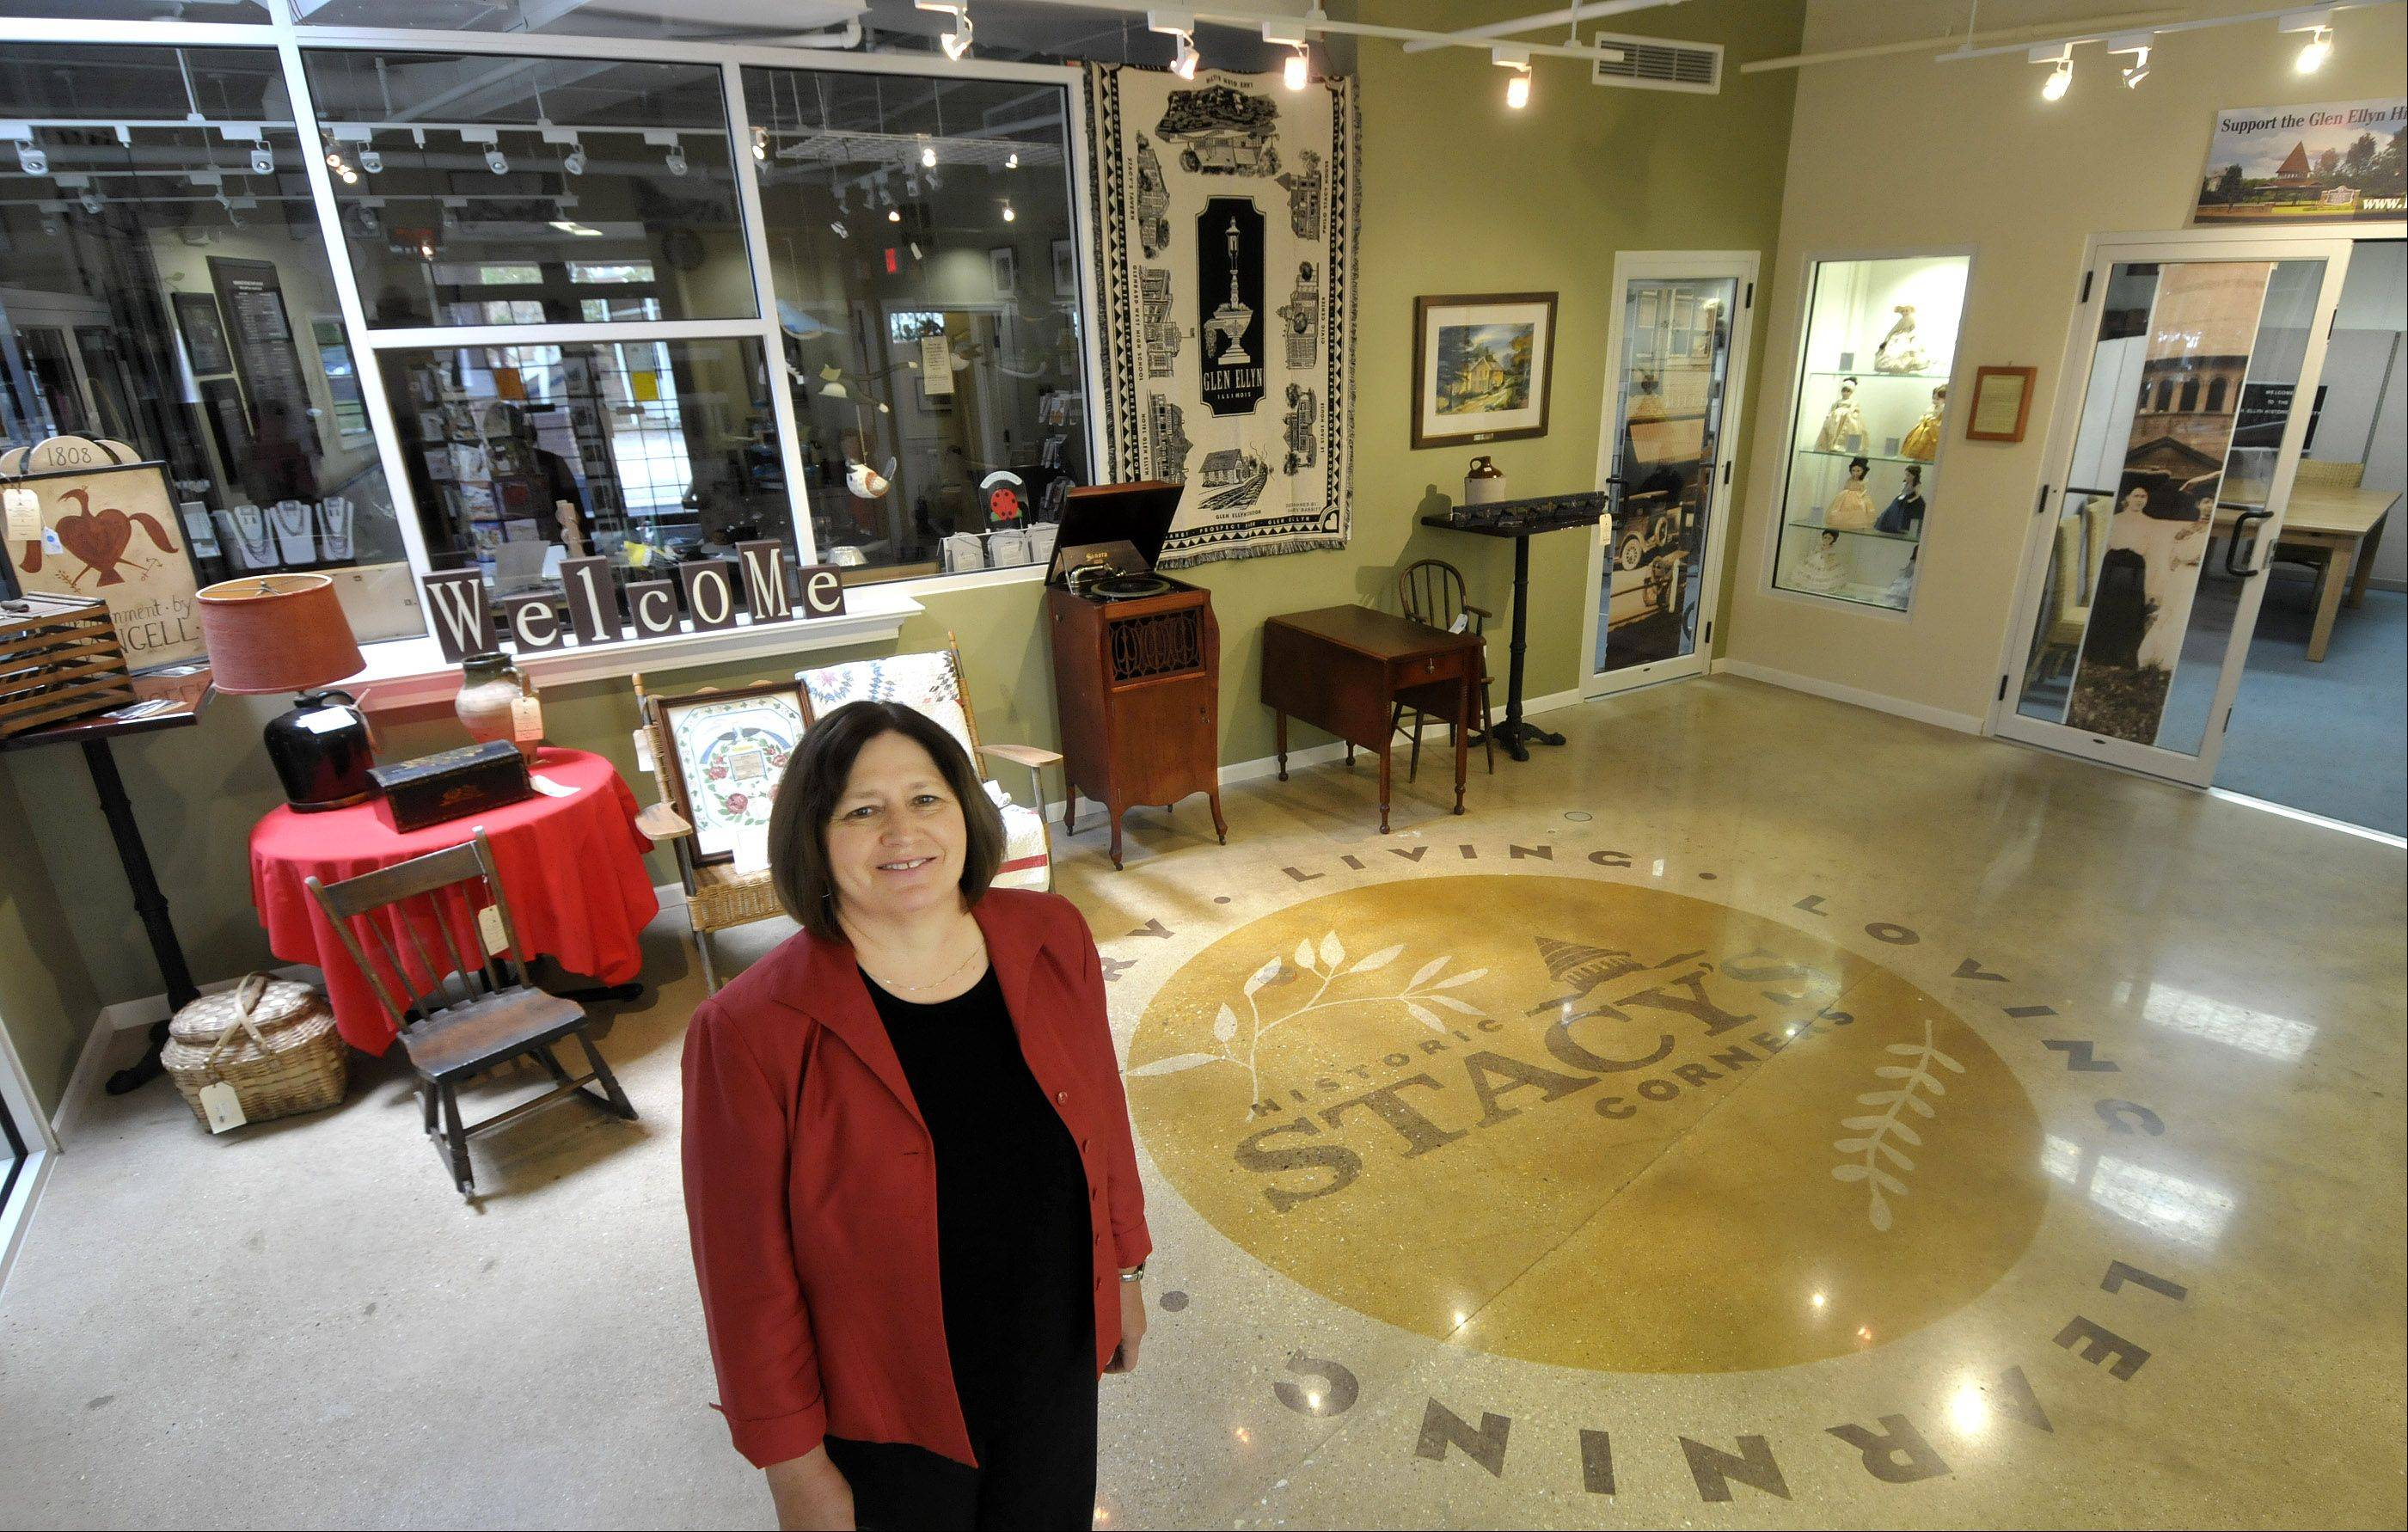 Jan Shupert-Arick, the new executive director of the Glen Ellyn Historical Society, is looking for more ways to share Glen Ellyn's rich history with the community, including having changing exhibits in the lobby of the Glen Ellyn History Center.